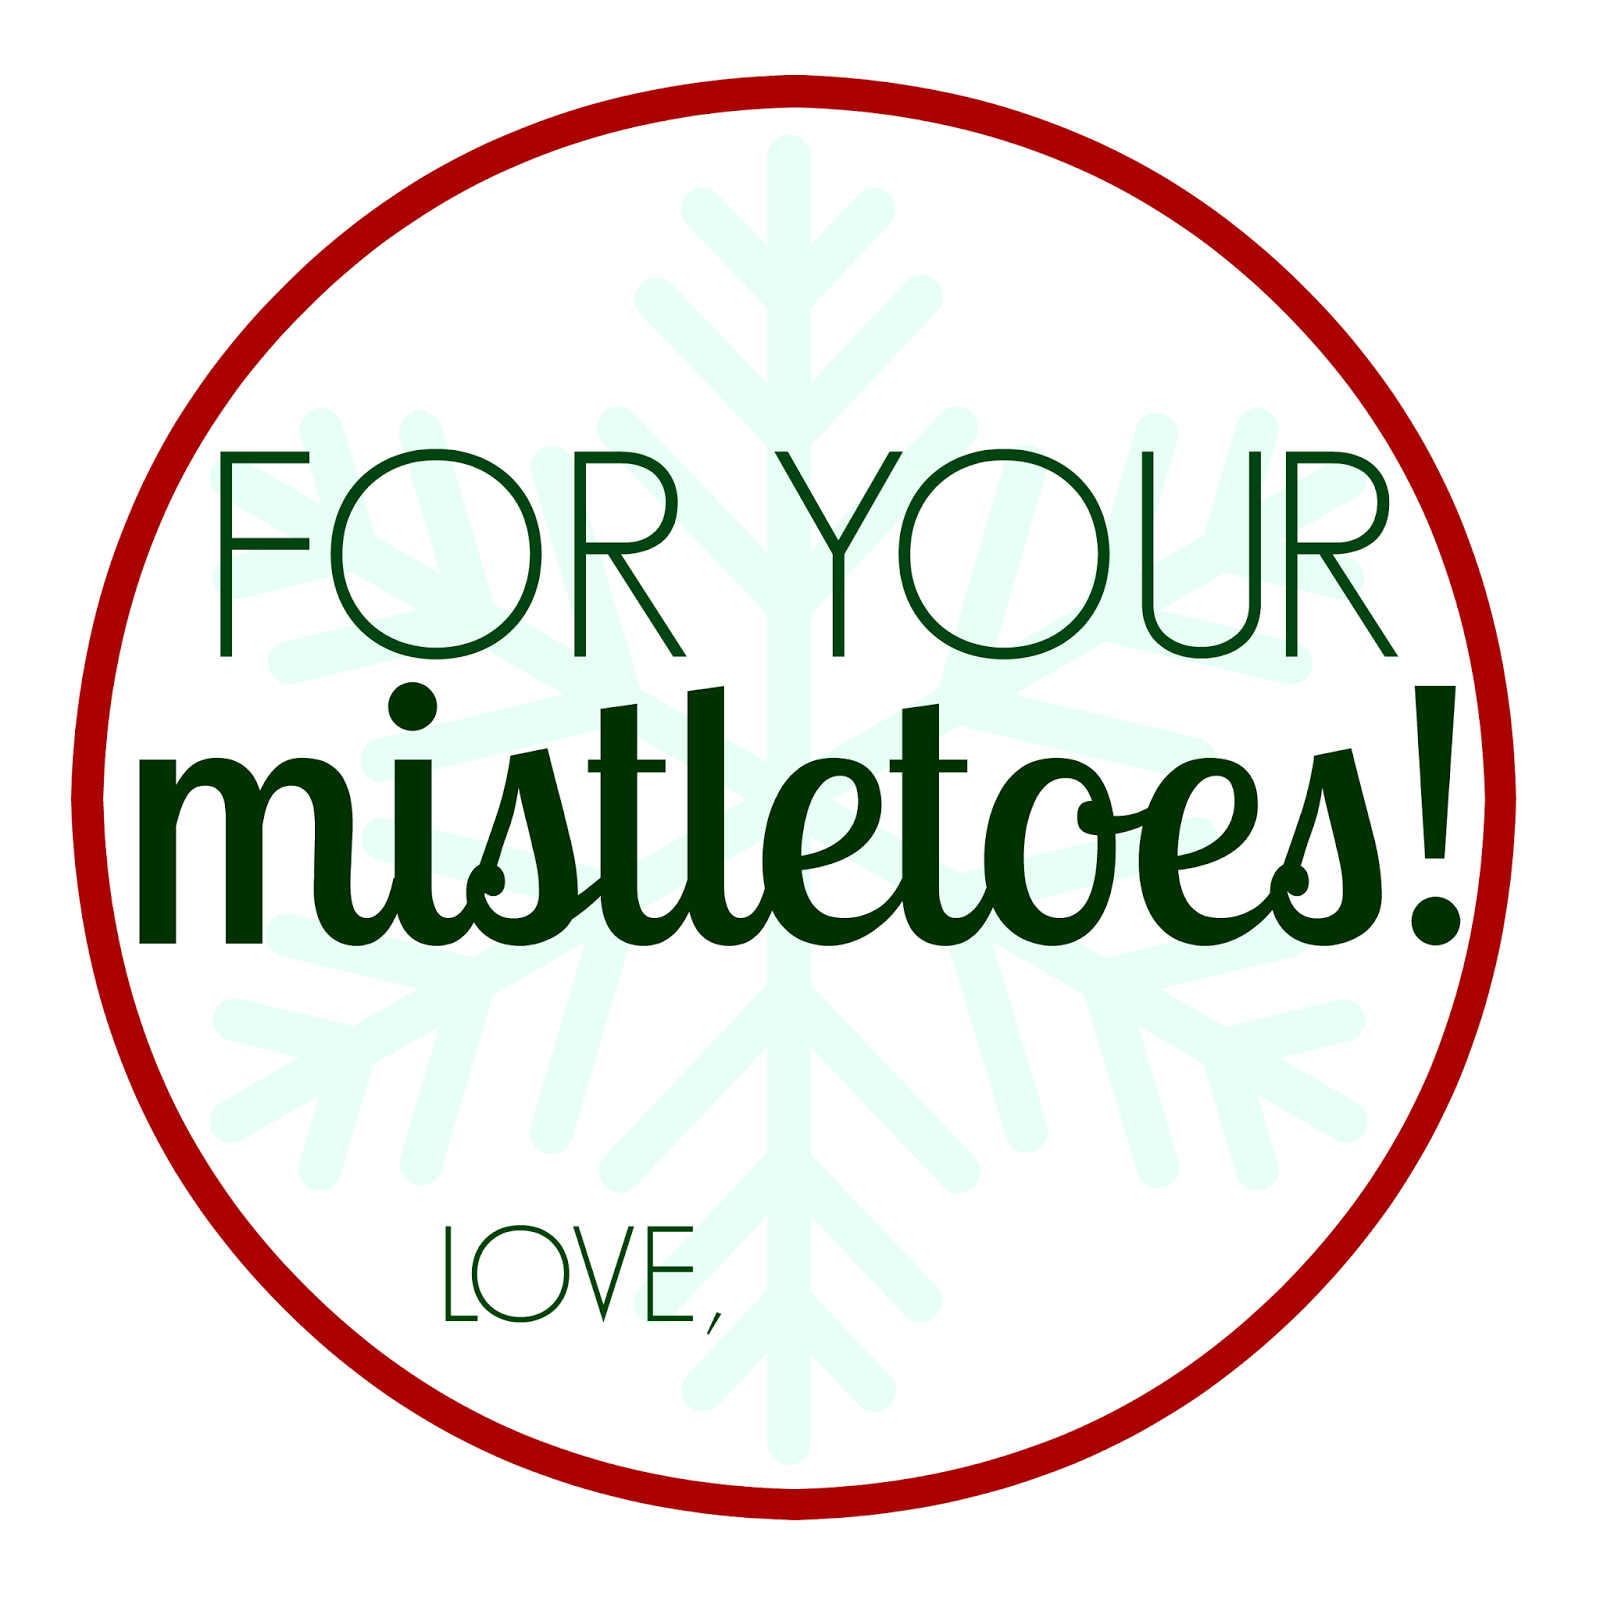 picture regarding For Your Mistletoes Printable titled 4 Very simple Do it yourself Xmas Presents - The Stylish Chick